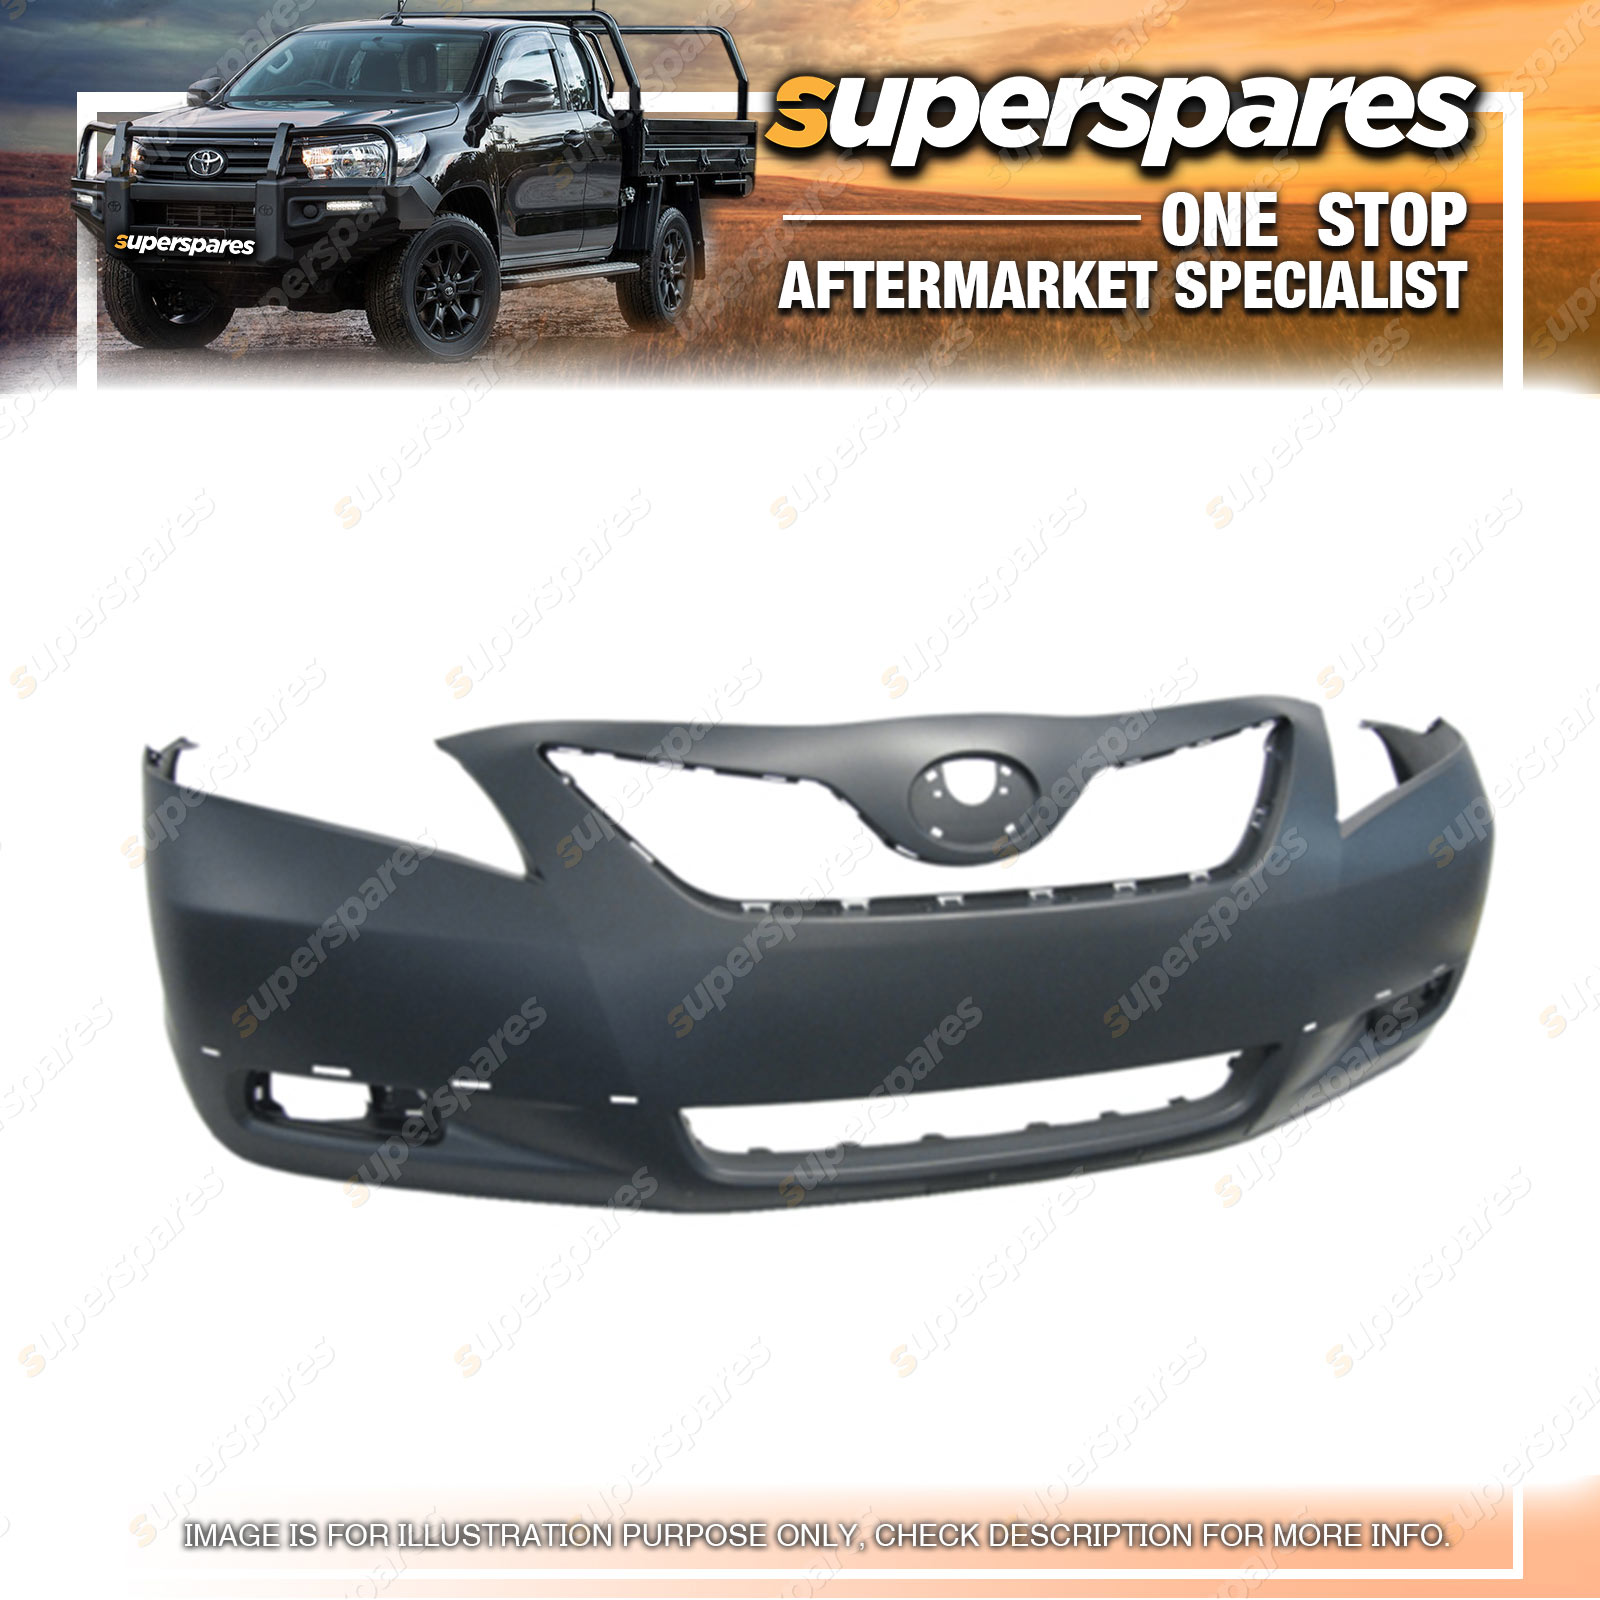 hight resolution of image of 1998 toyota camry front bumper assembly 1997 1998 1999 ford taurus bumper diagram front